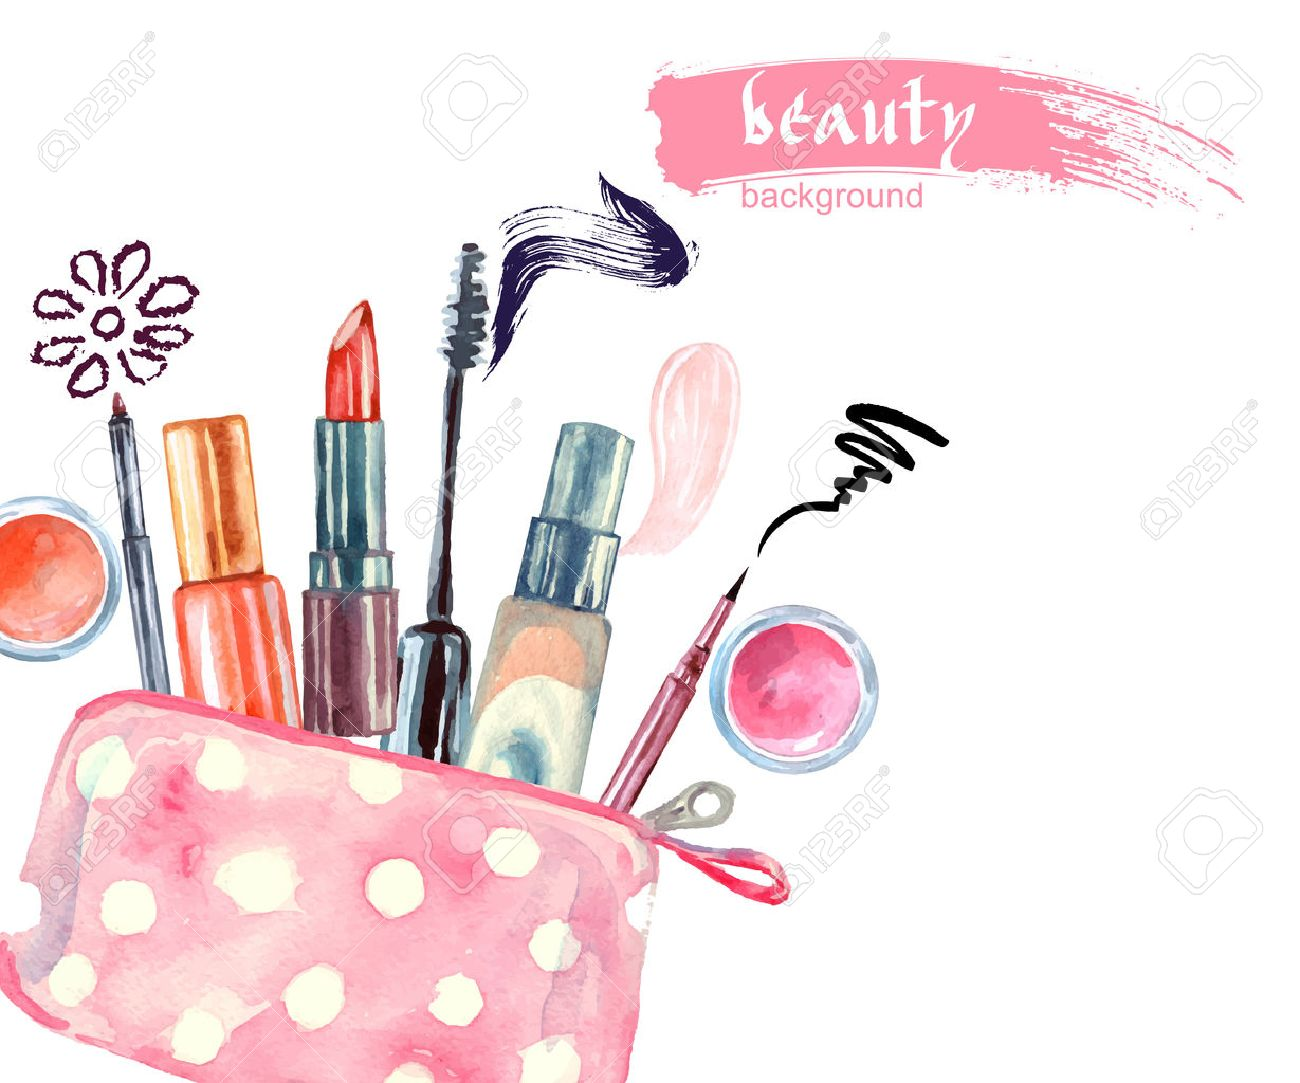 Watercolor cosmetics pattern. with cosmetic bag and make up artist objects: lipstick, eye shadows, eyeliner, concealer, nail polish. Vector illustration. - 51867375